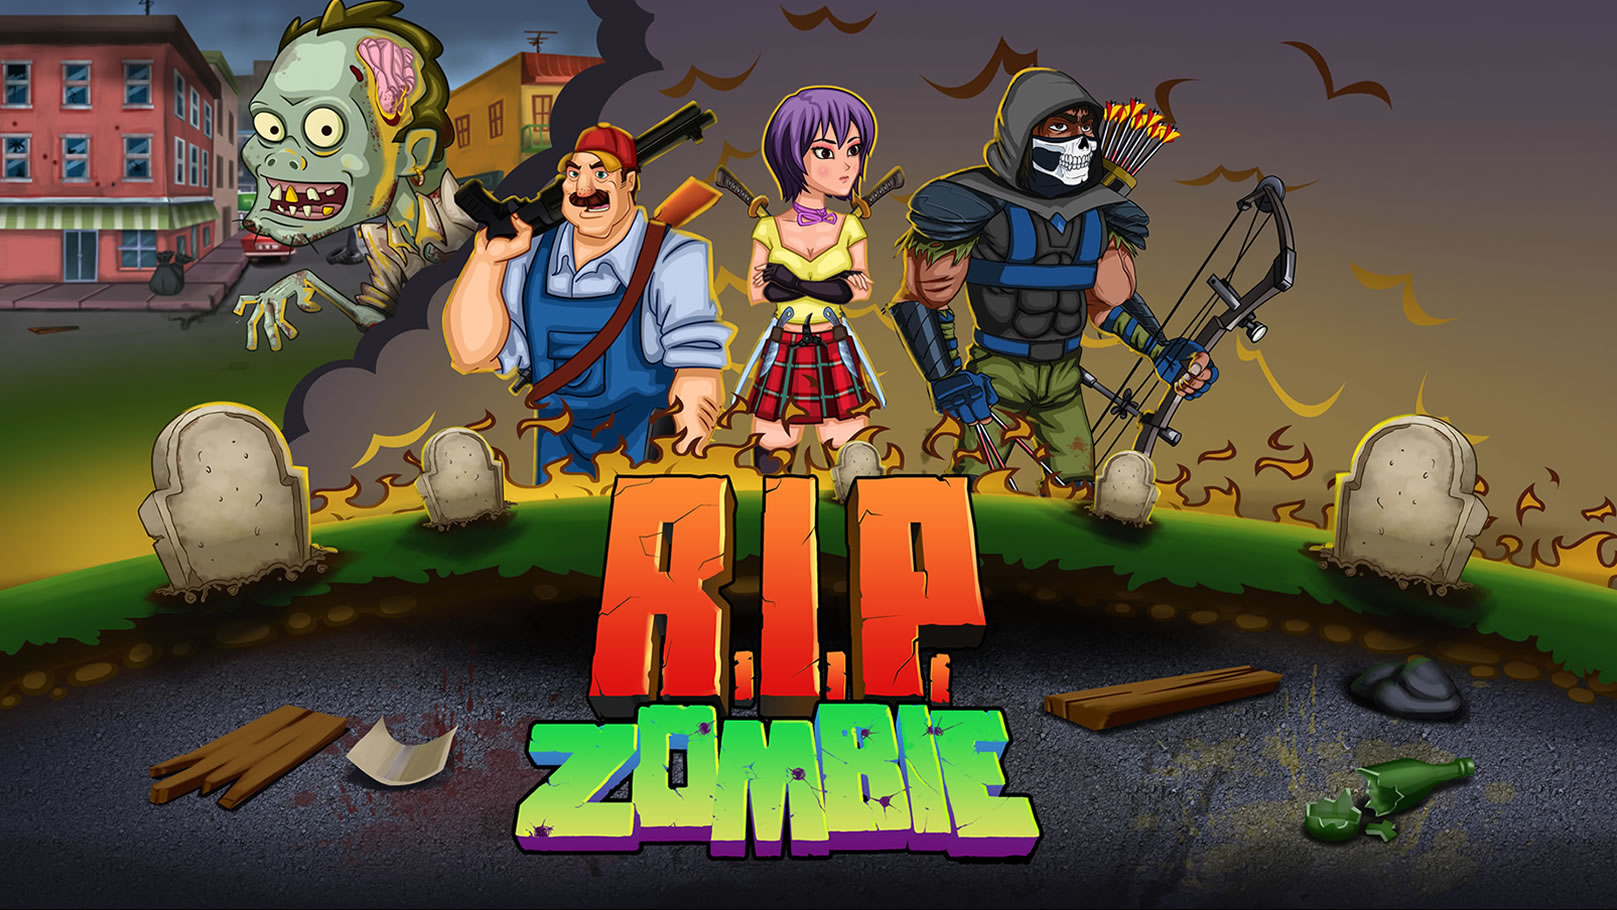 R I P  Zombie is a zombie survival puzzle game with RPG elements